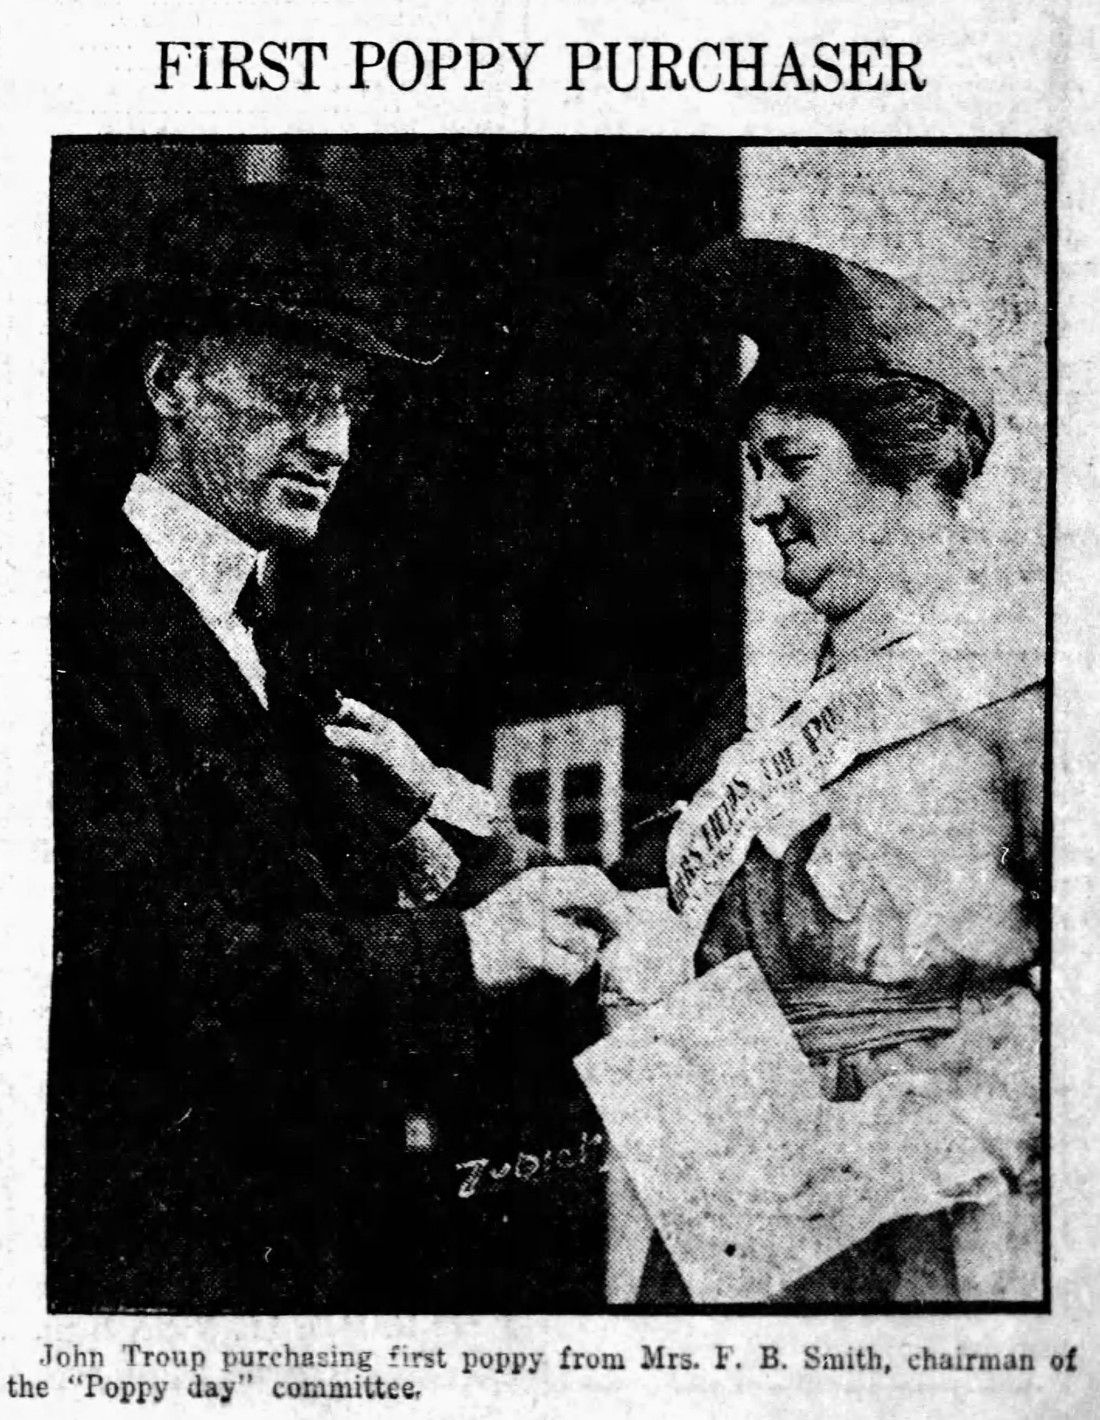 Chapter 6 madames childrens league usa poppy french chapter 6 madames childrens league usa poppy publicscrutiny Image collections